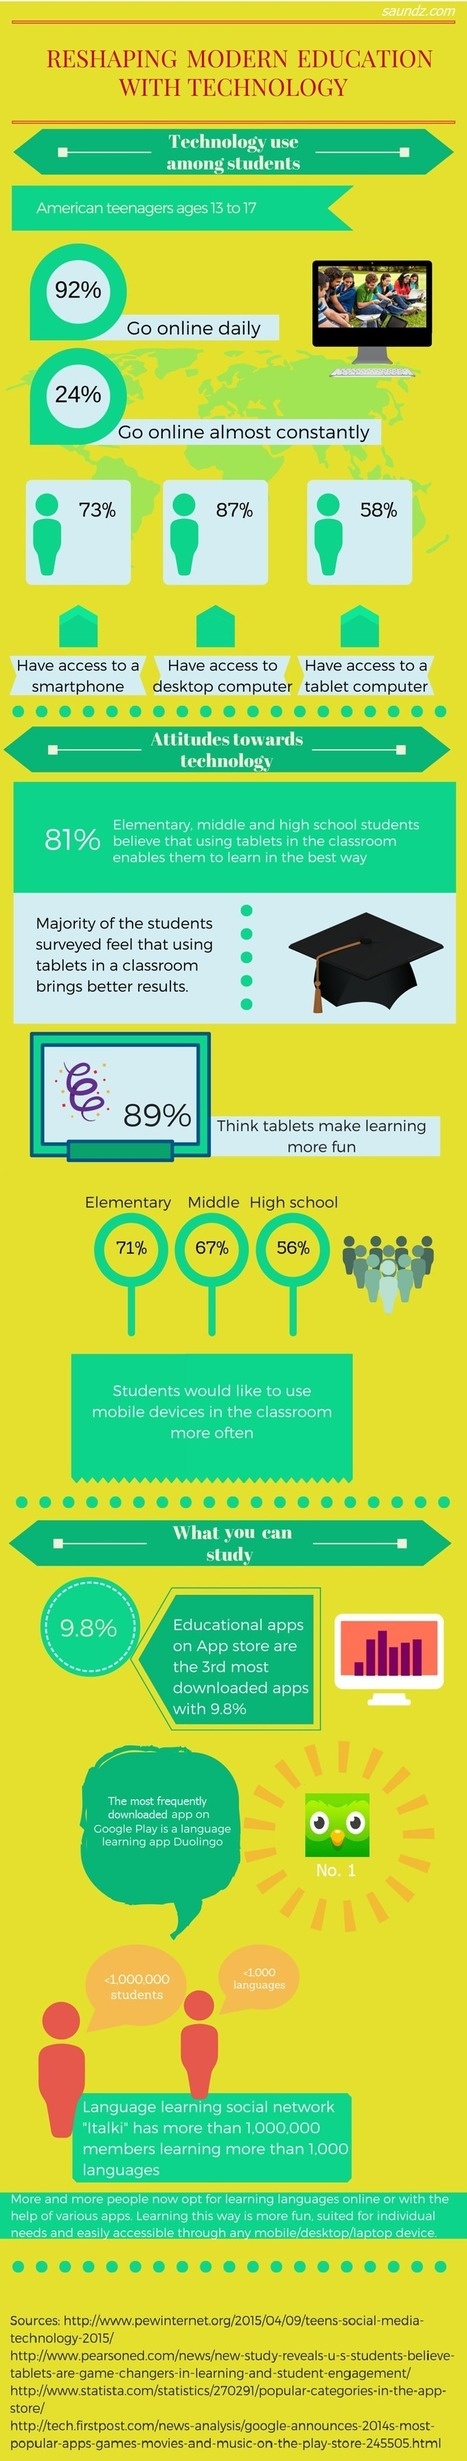 [Infographic] Reshaping Modern Education with Technology | Class Tech | Scoop.it